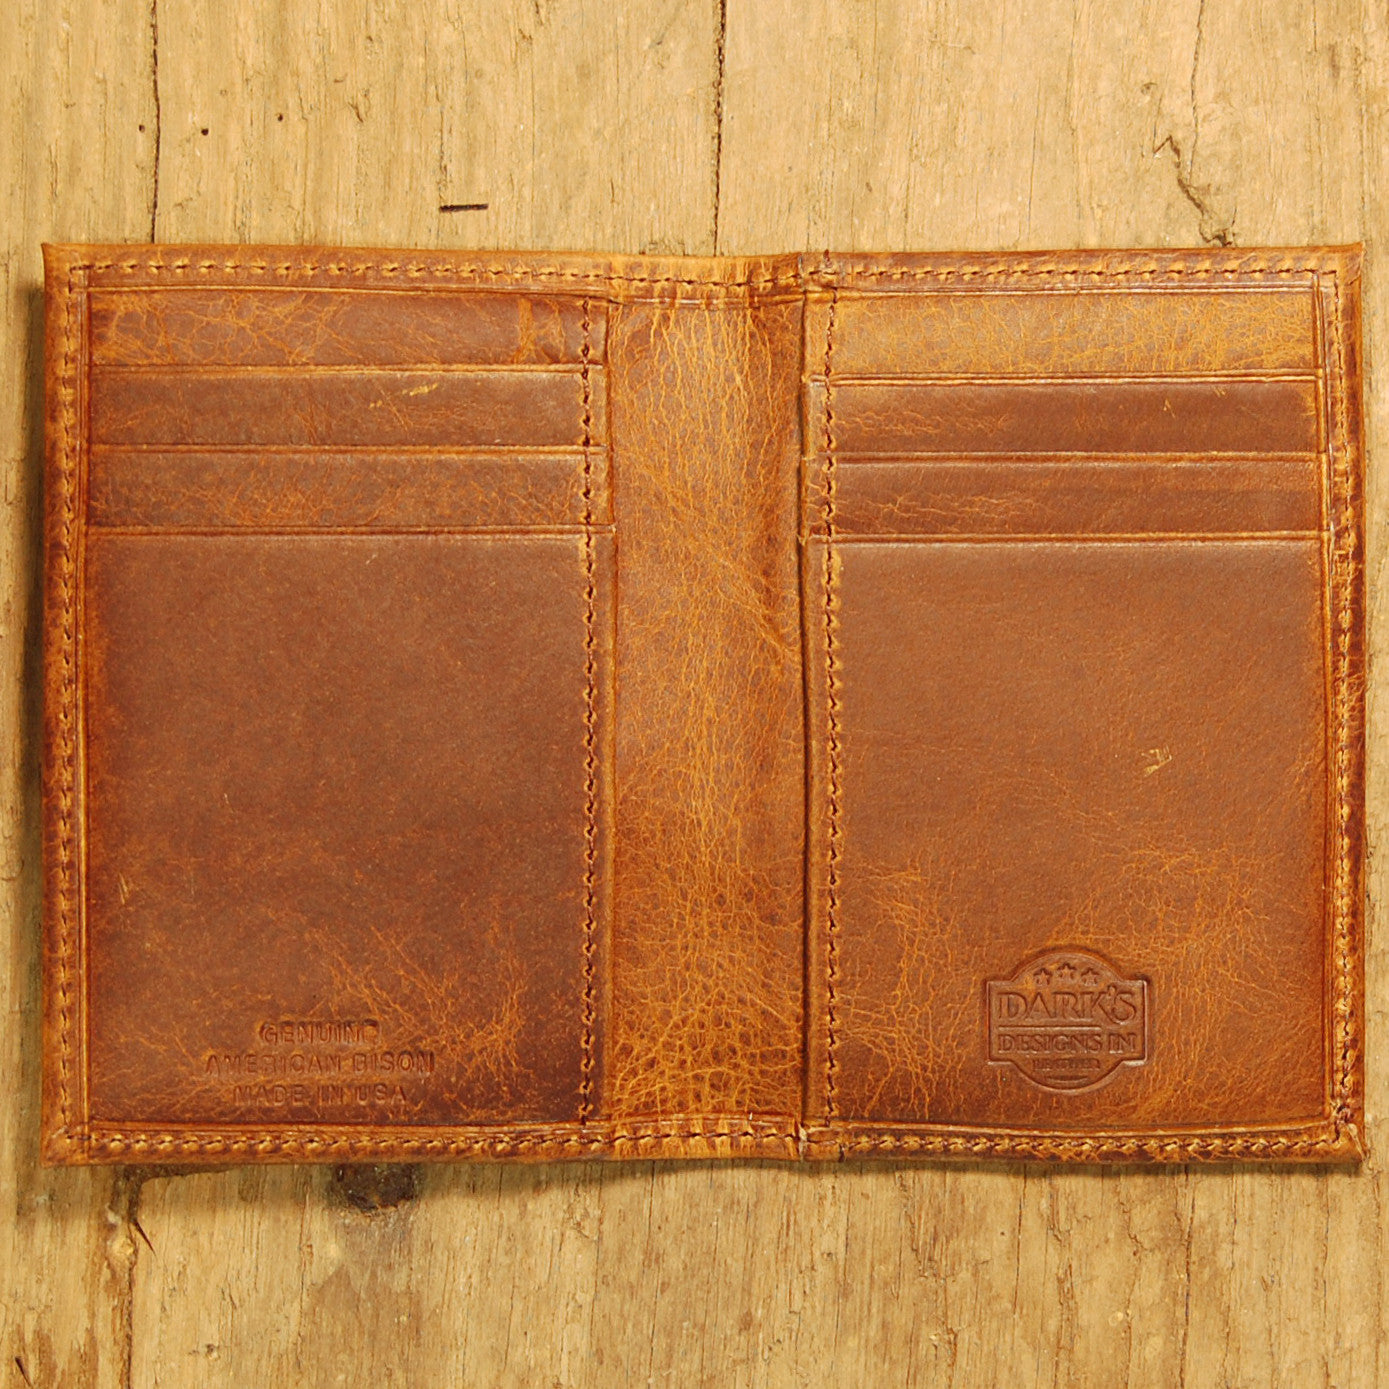 Dark's Leather Executive Card Case in Bison Tobacco, Interior